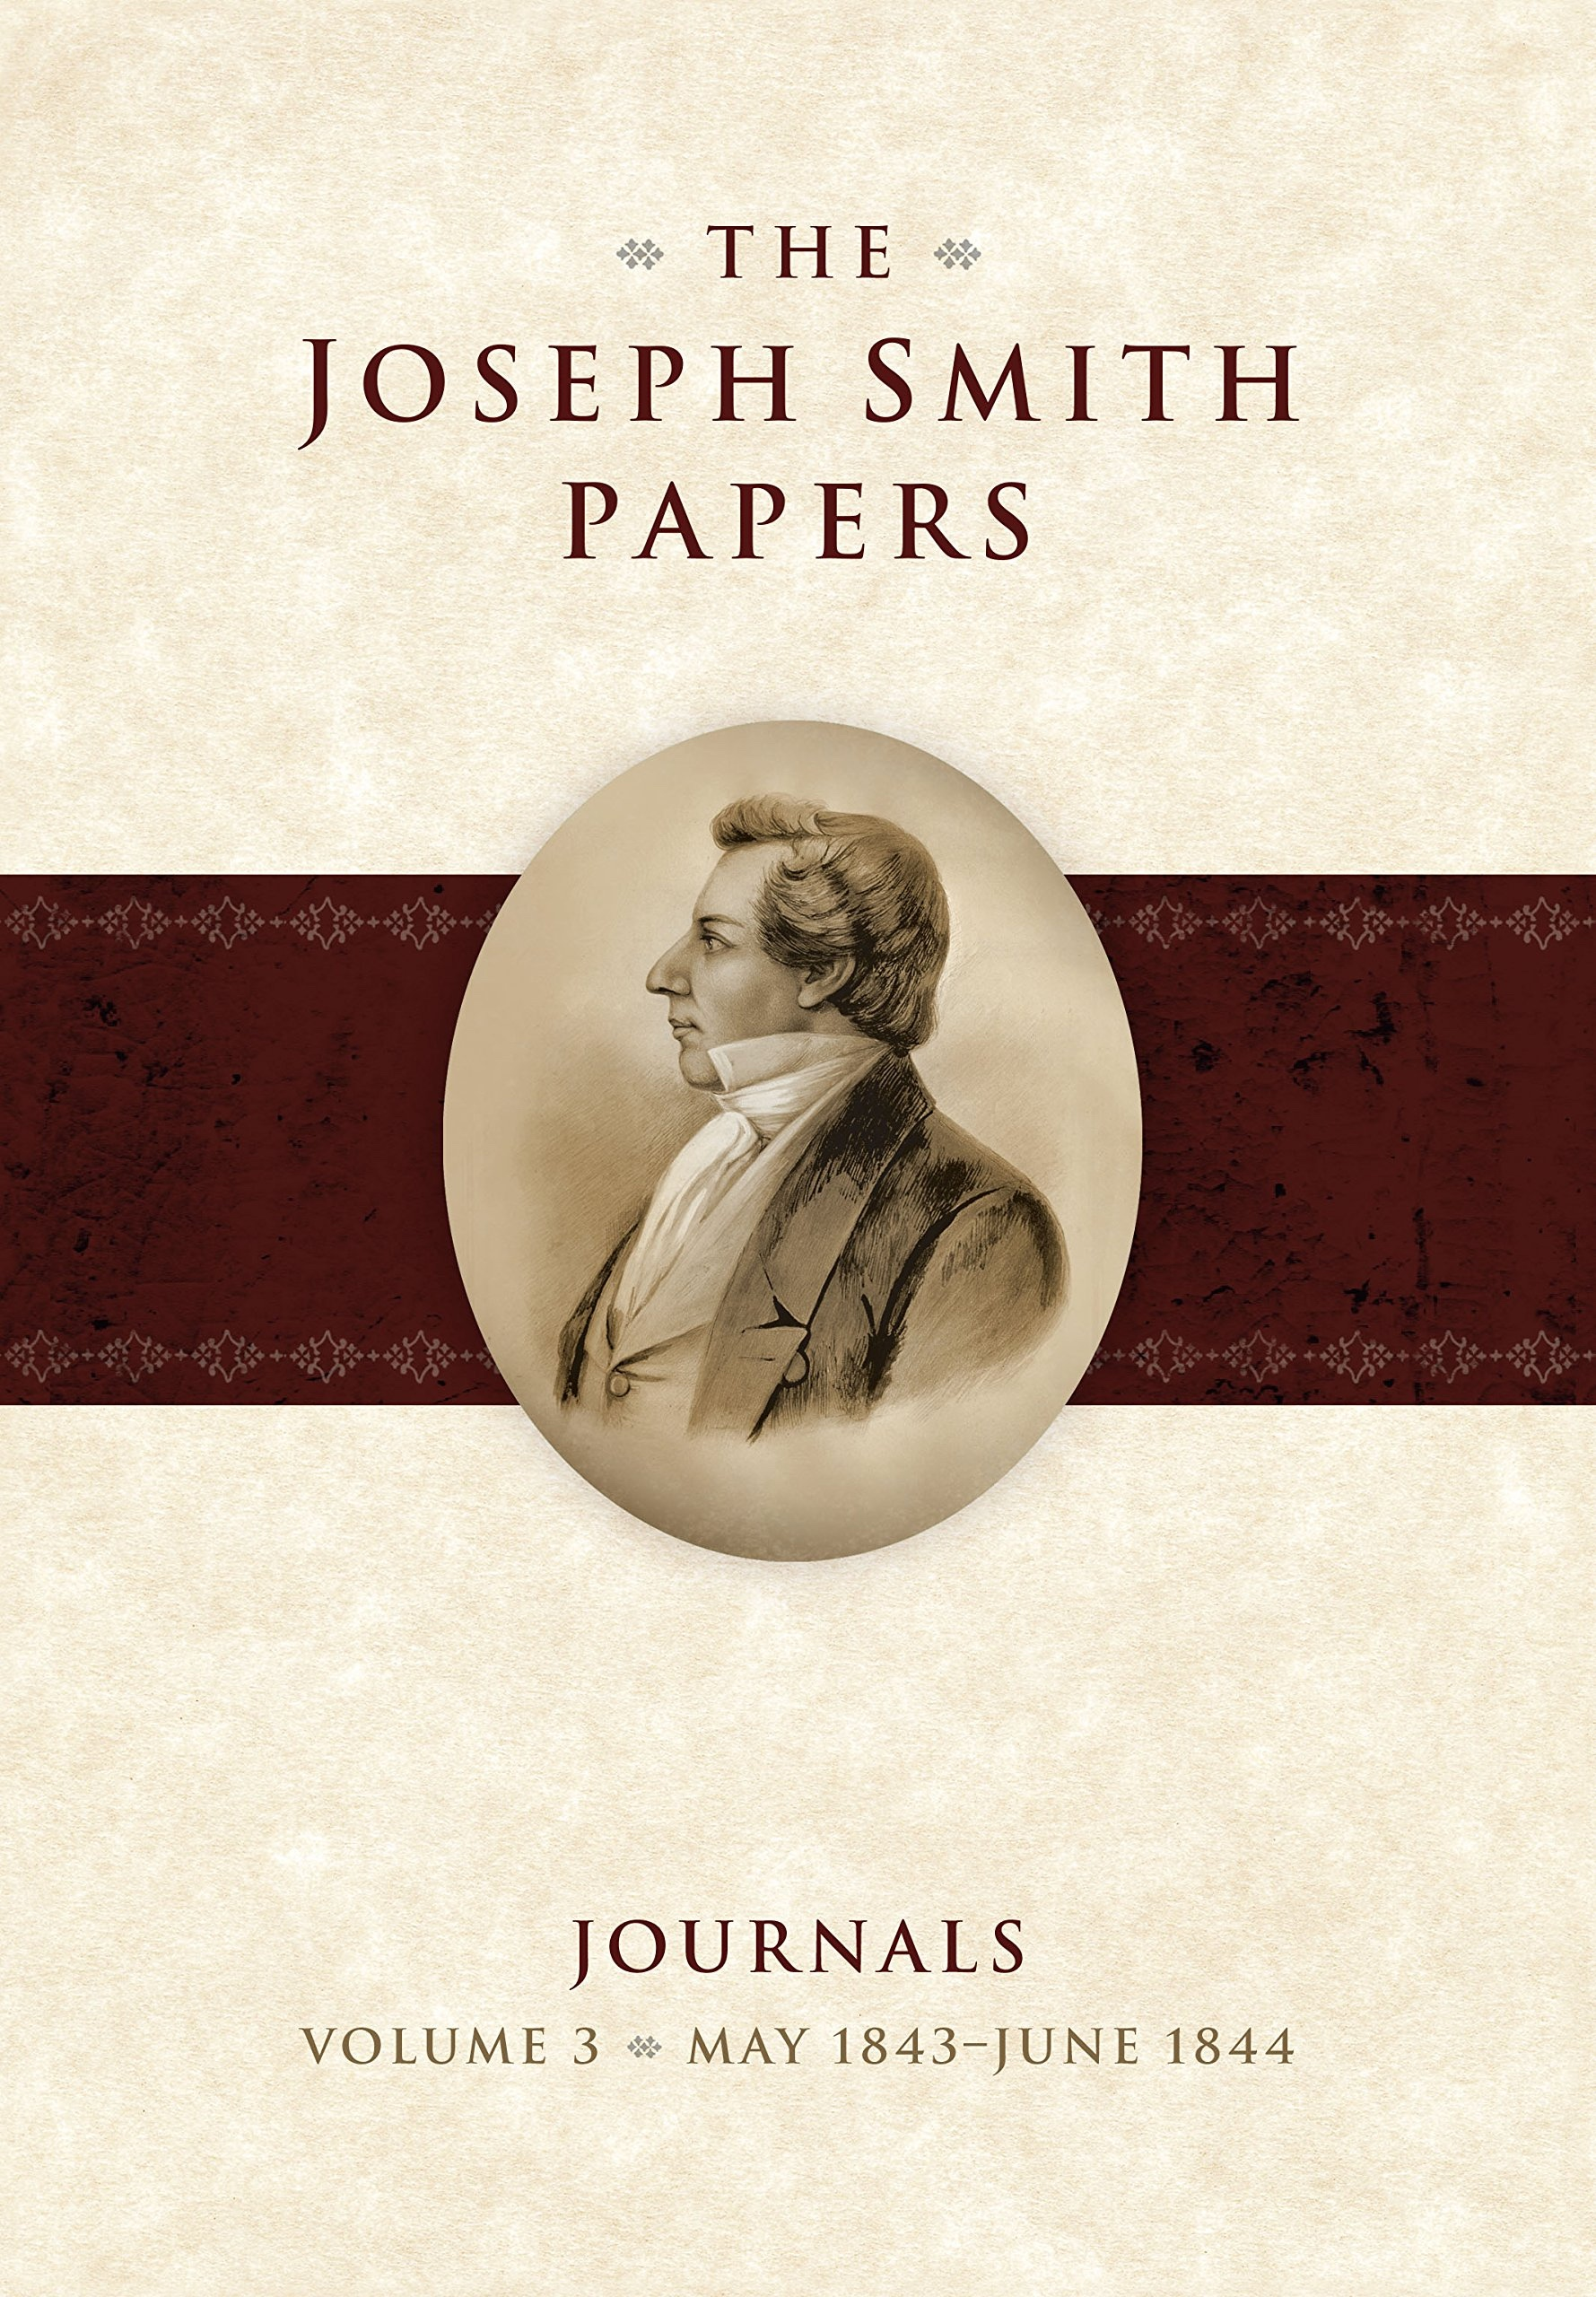 The Joseph Smith Papers;  Journals Volume 3: May 1843 - June 1844, Hedges, Andrew H. & Alex D. Smith & Brent M. Rogers